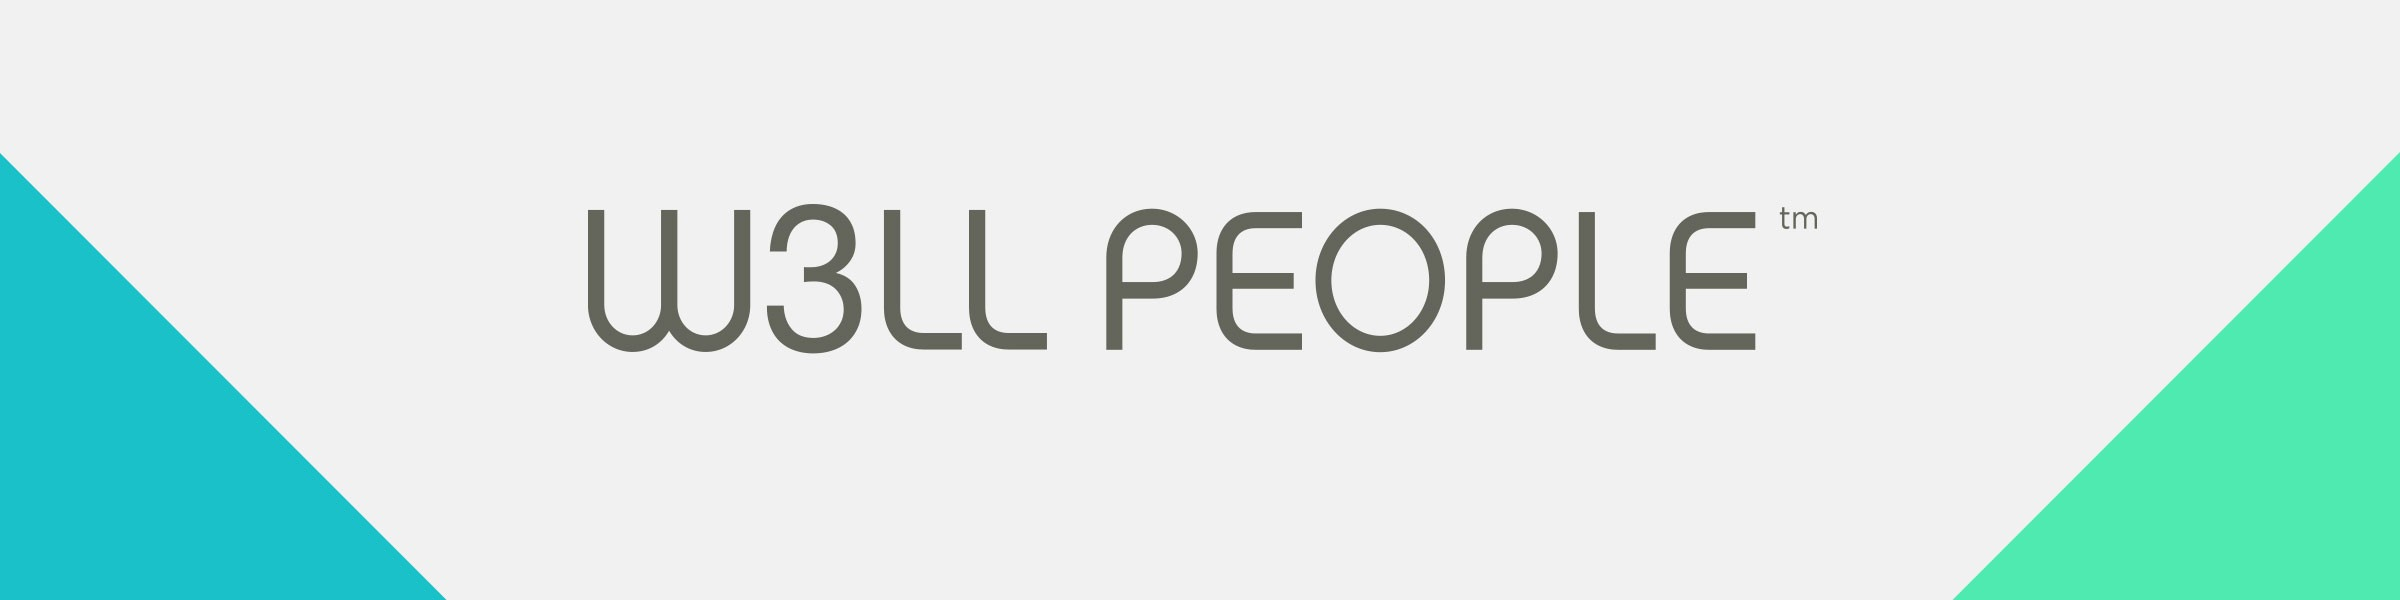 W3LL People trademark